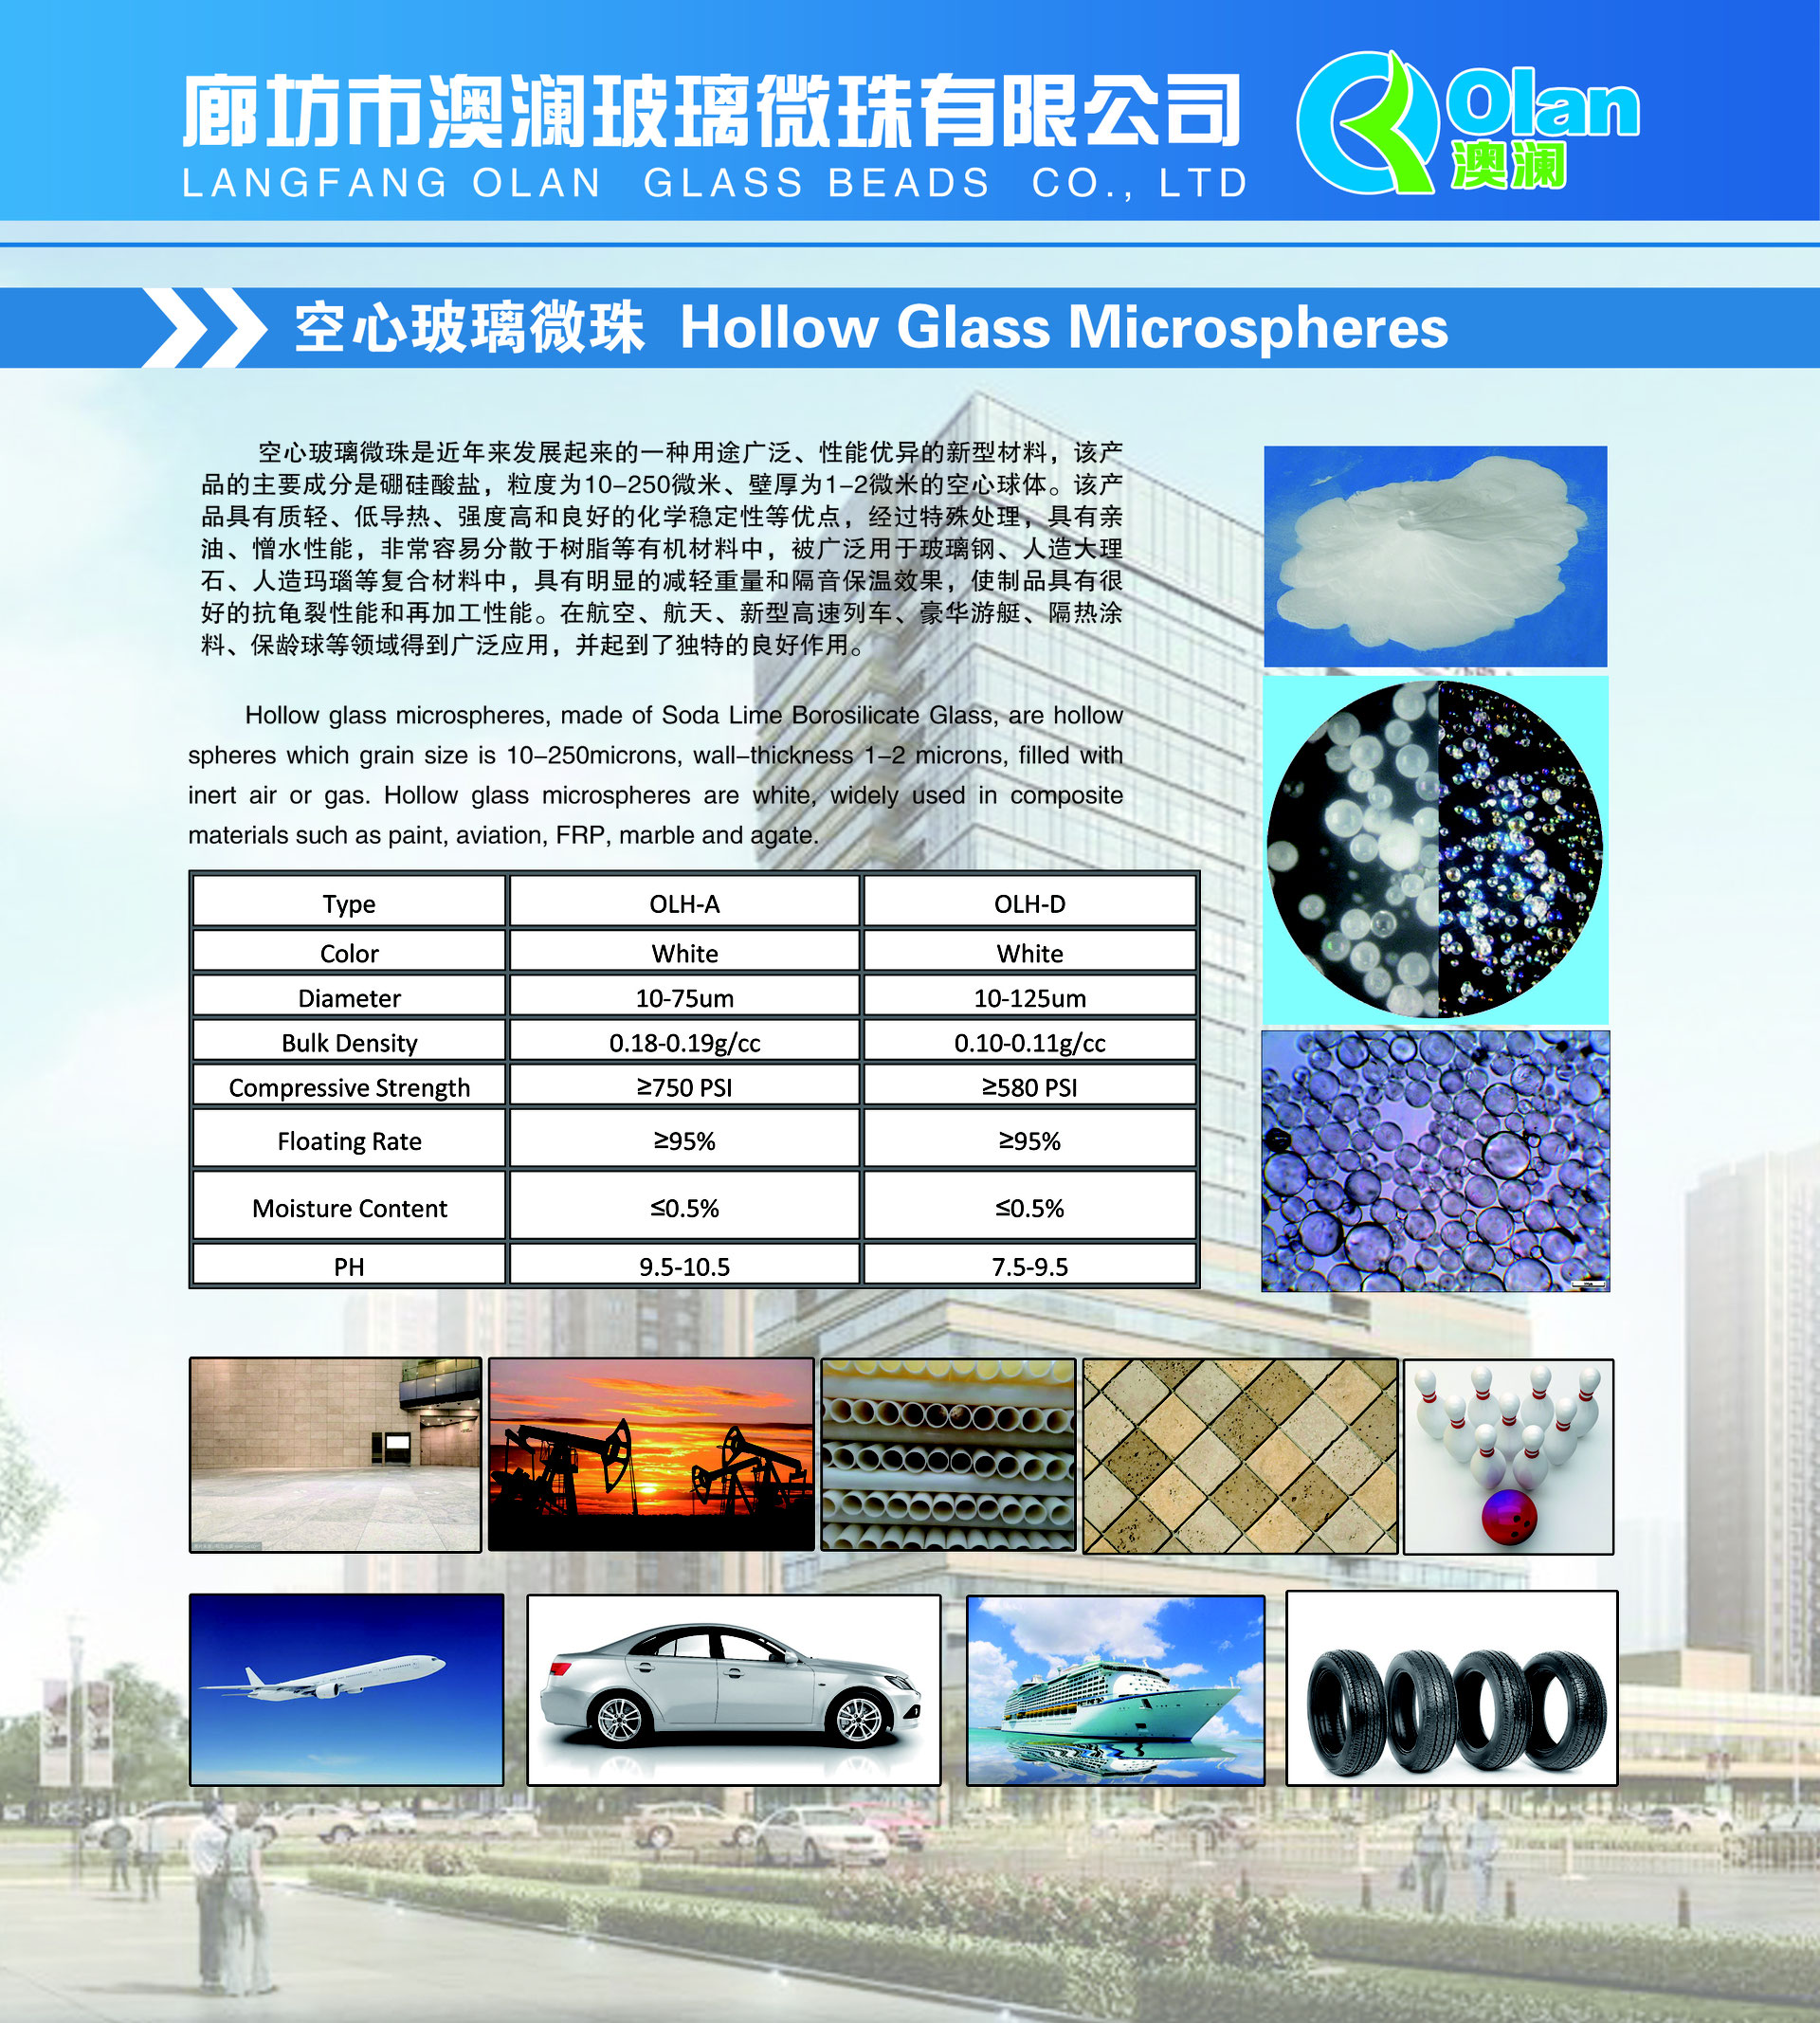 Hollow Glass Microspheres-Langfang Olan Glass Beads Co , Ltd - Olan